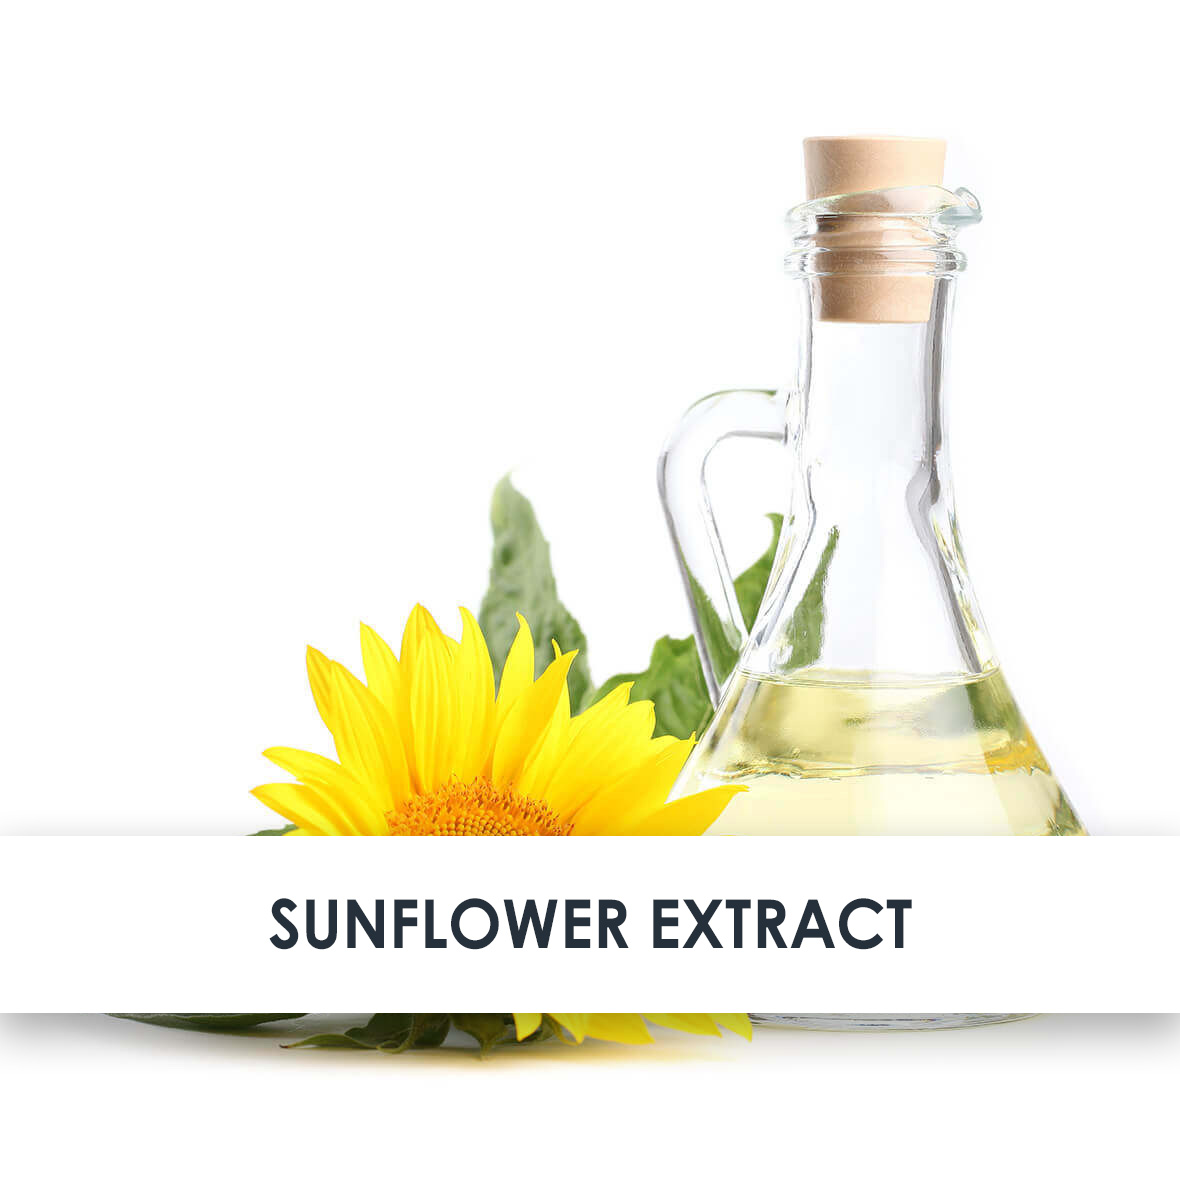 Sunflower Extract Skincare Benefits